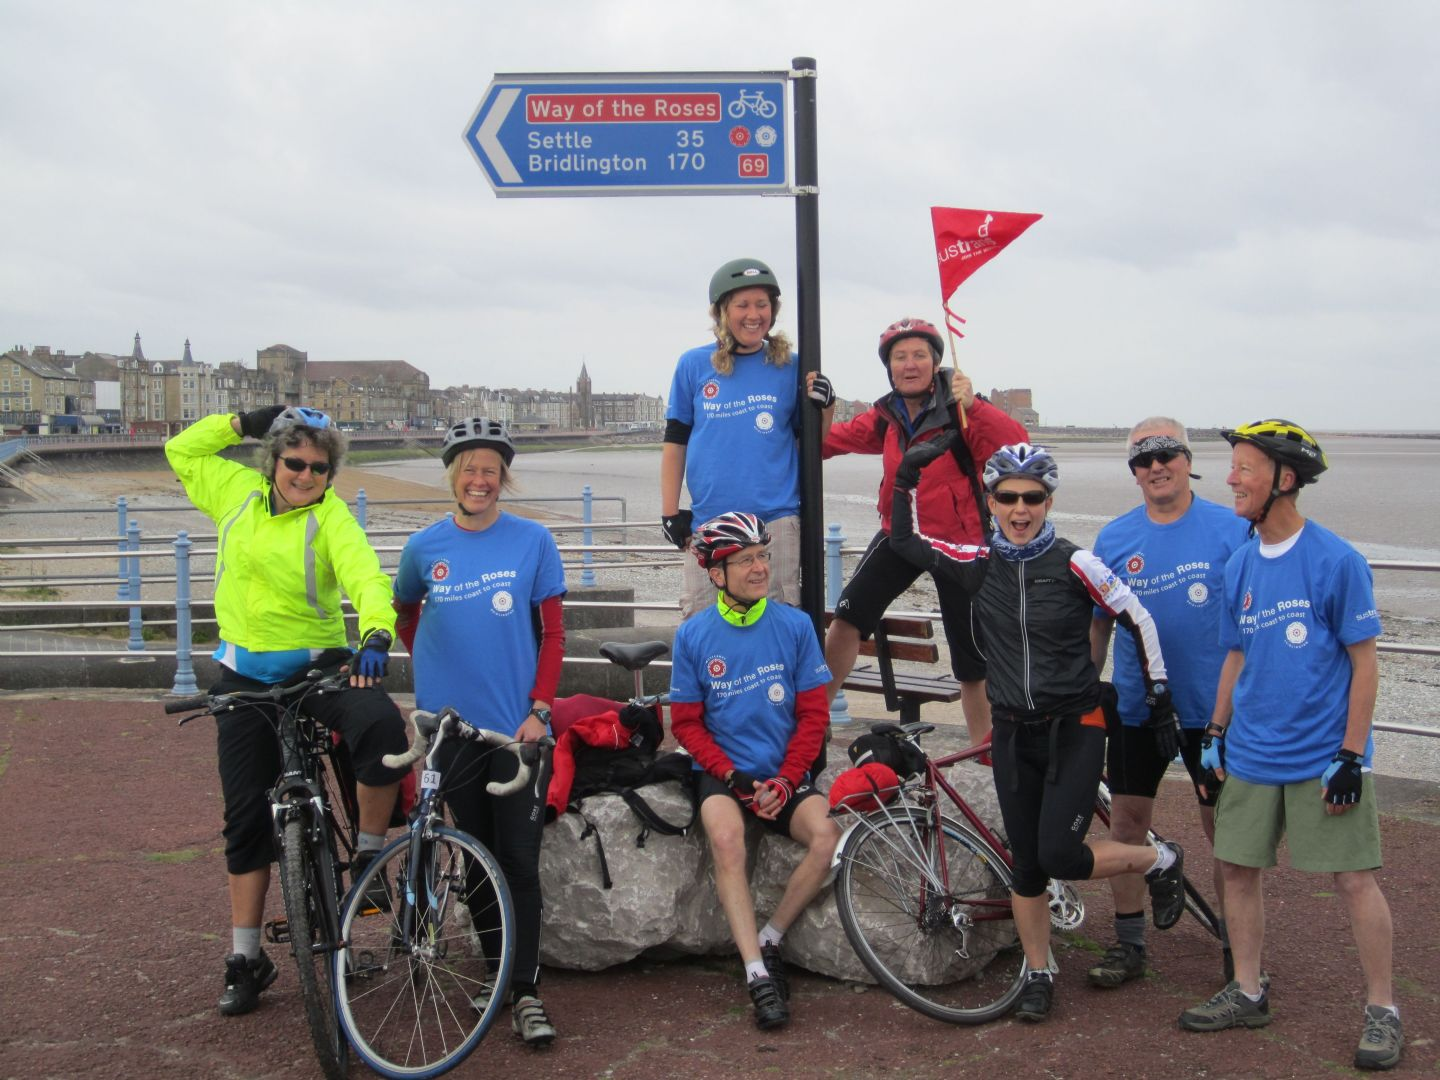 Way of the Roses Cycling 4.jpg - UK - Way of the Roses - Supported Leisure Cycling Holiday - Leisure Cycling